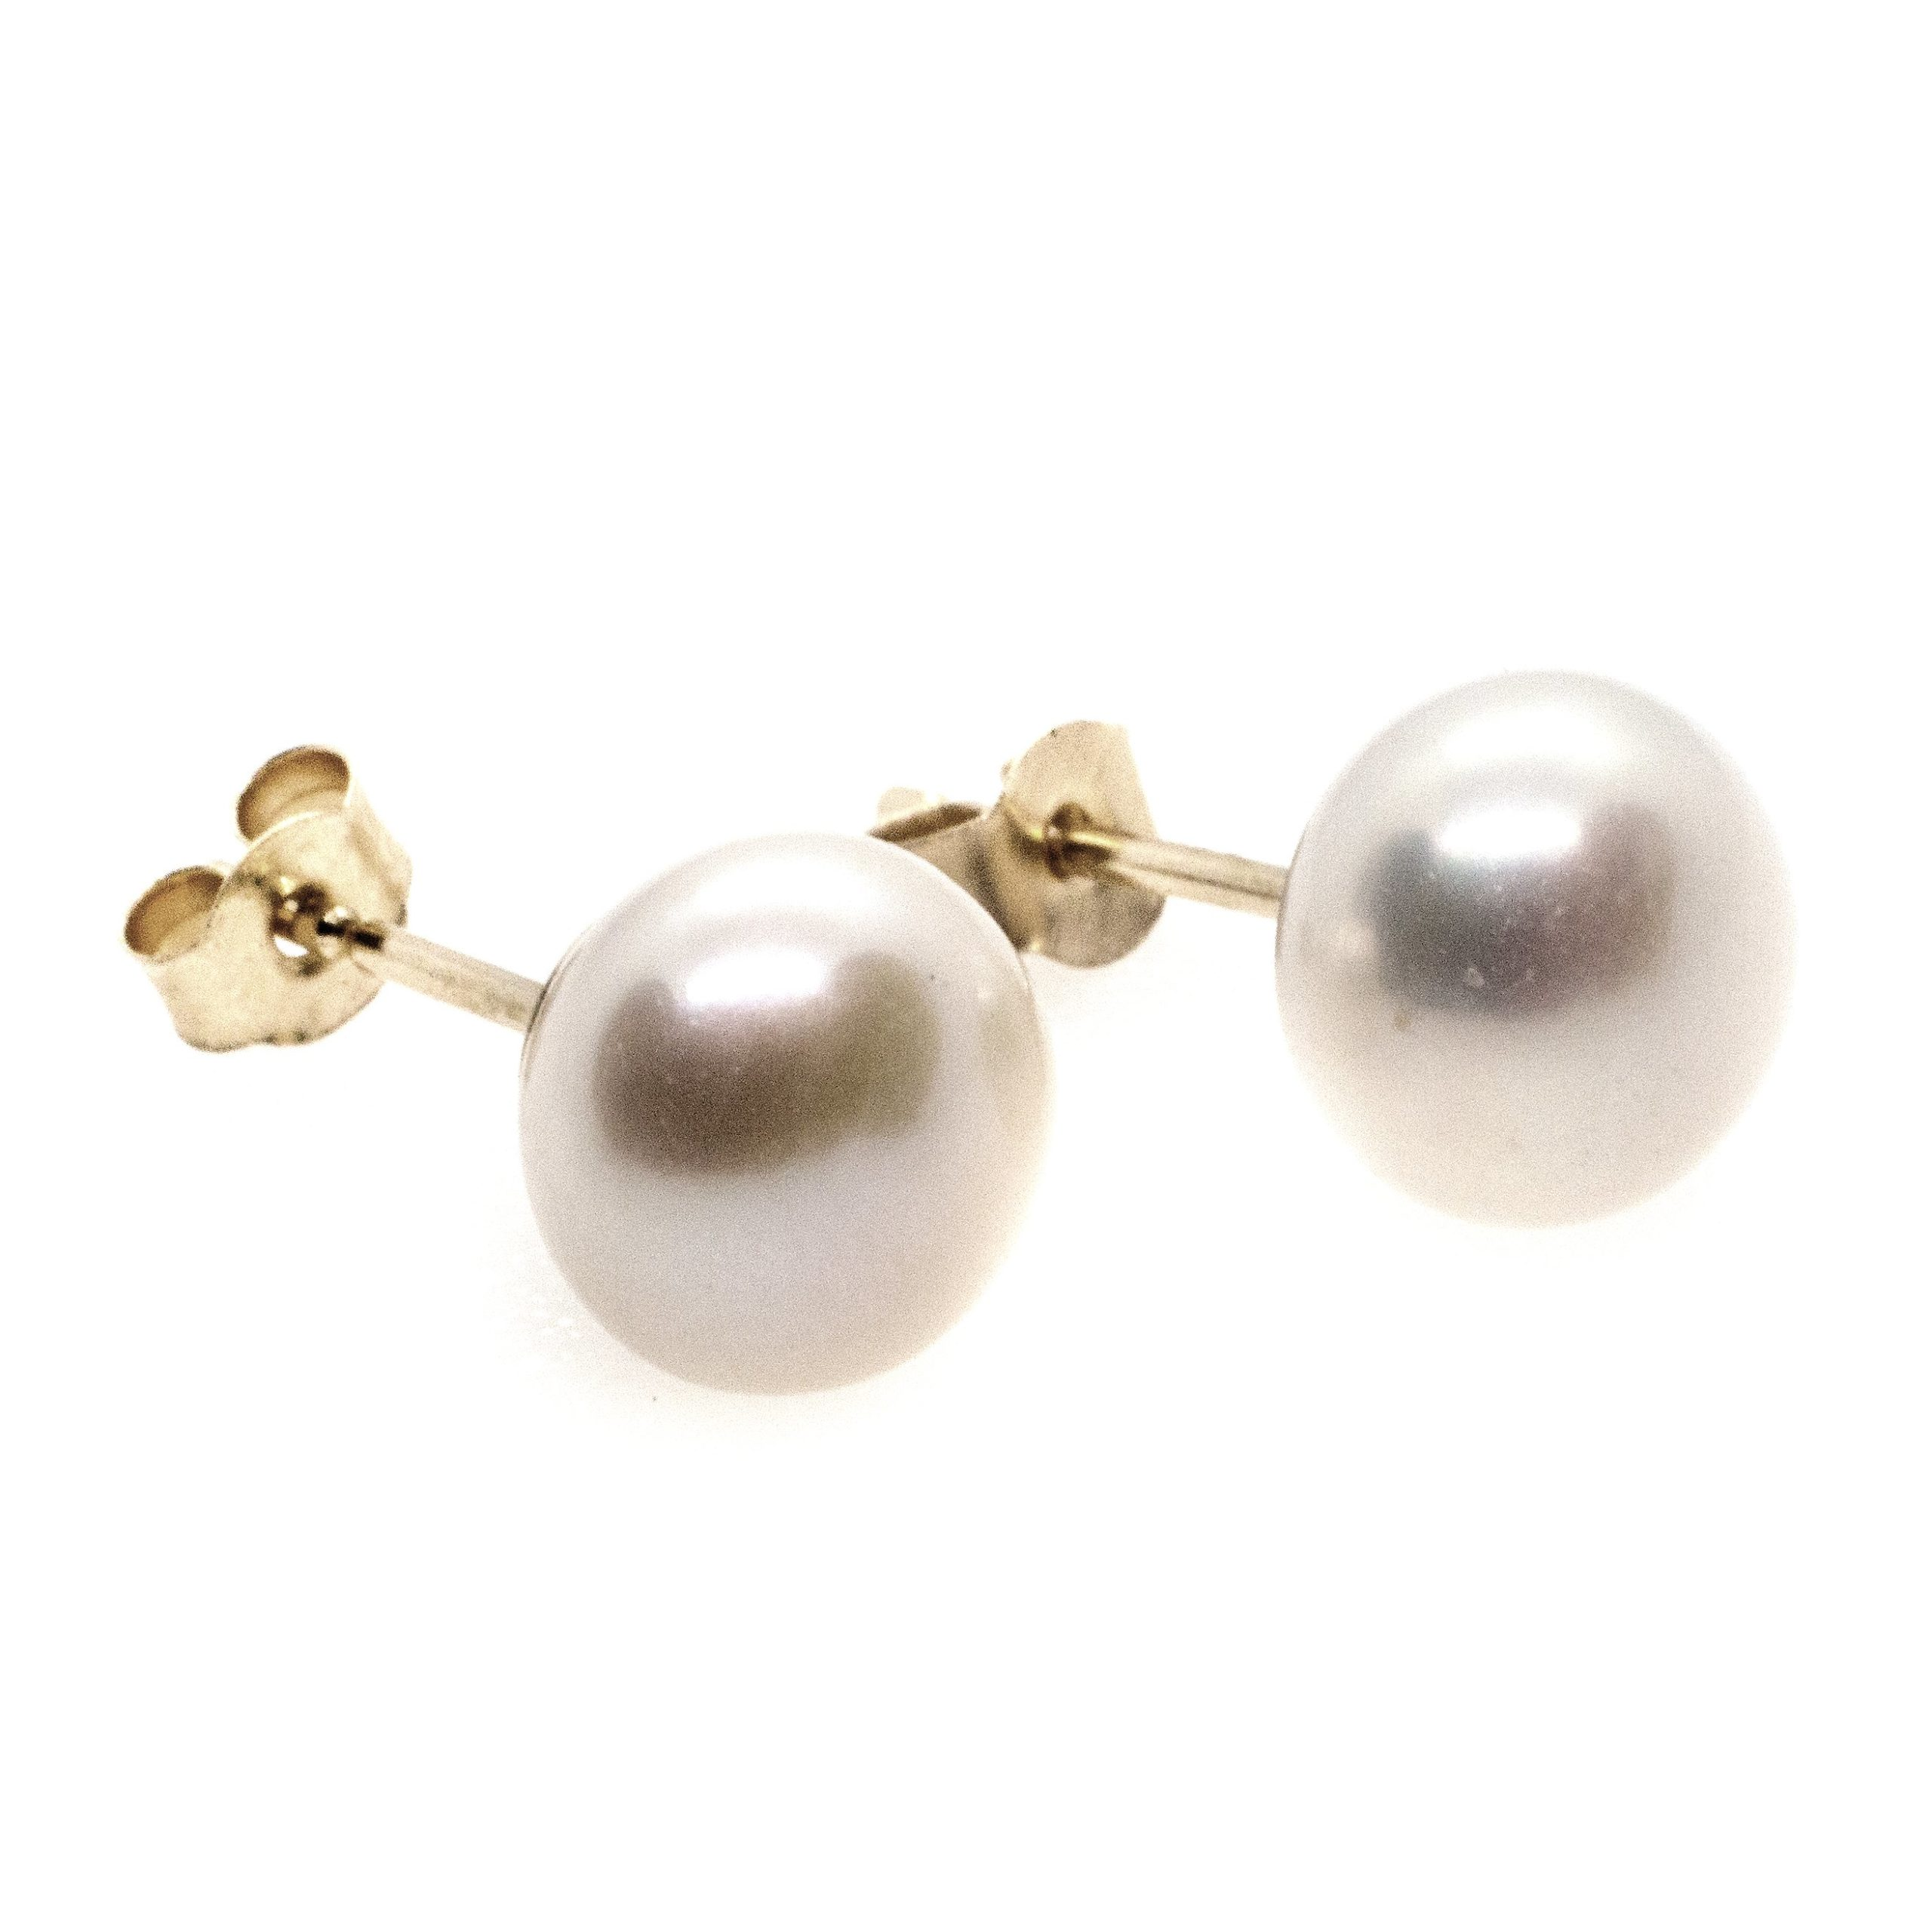 7mm fresh water pearl stud earrings 9ct yellow gold